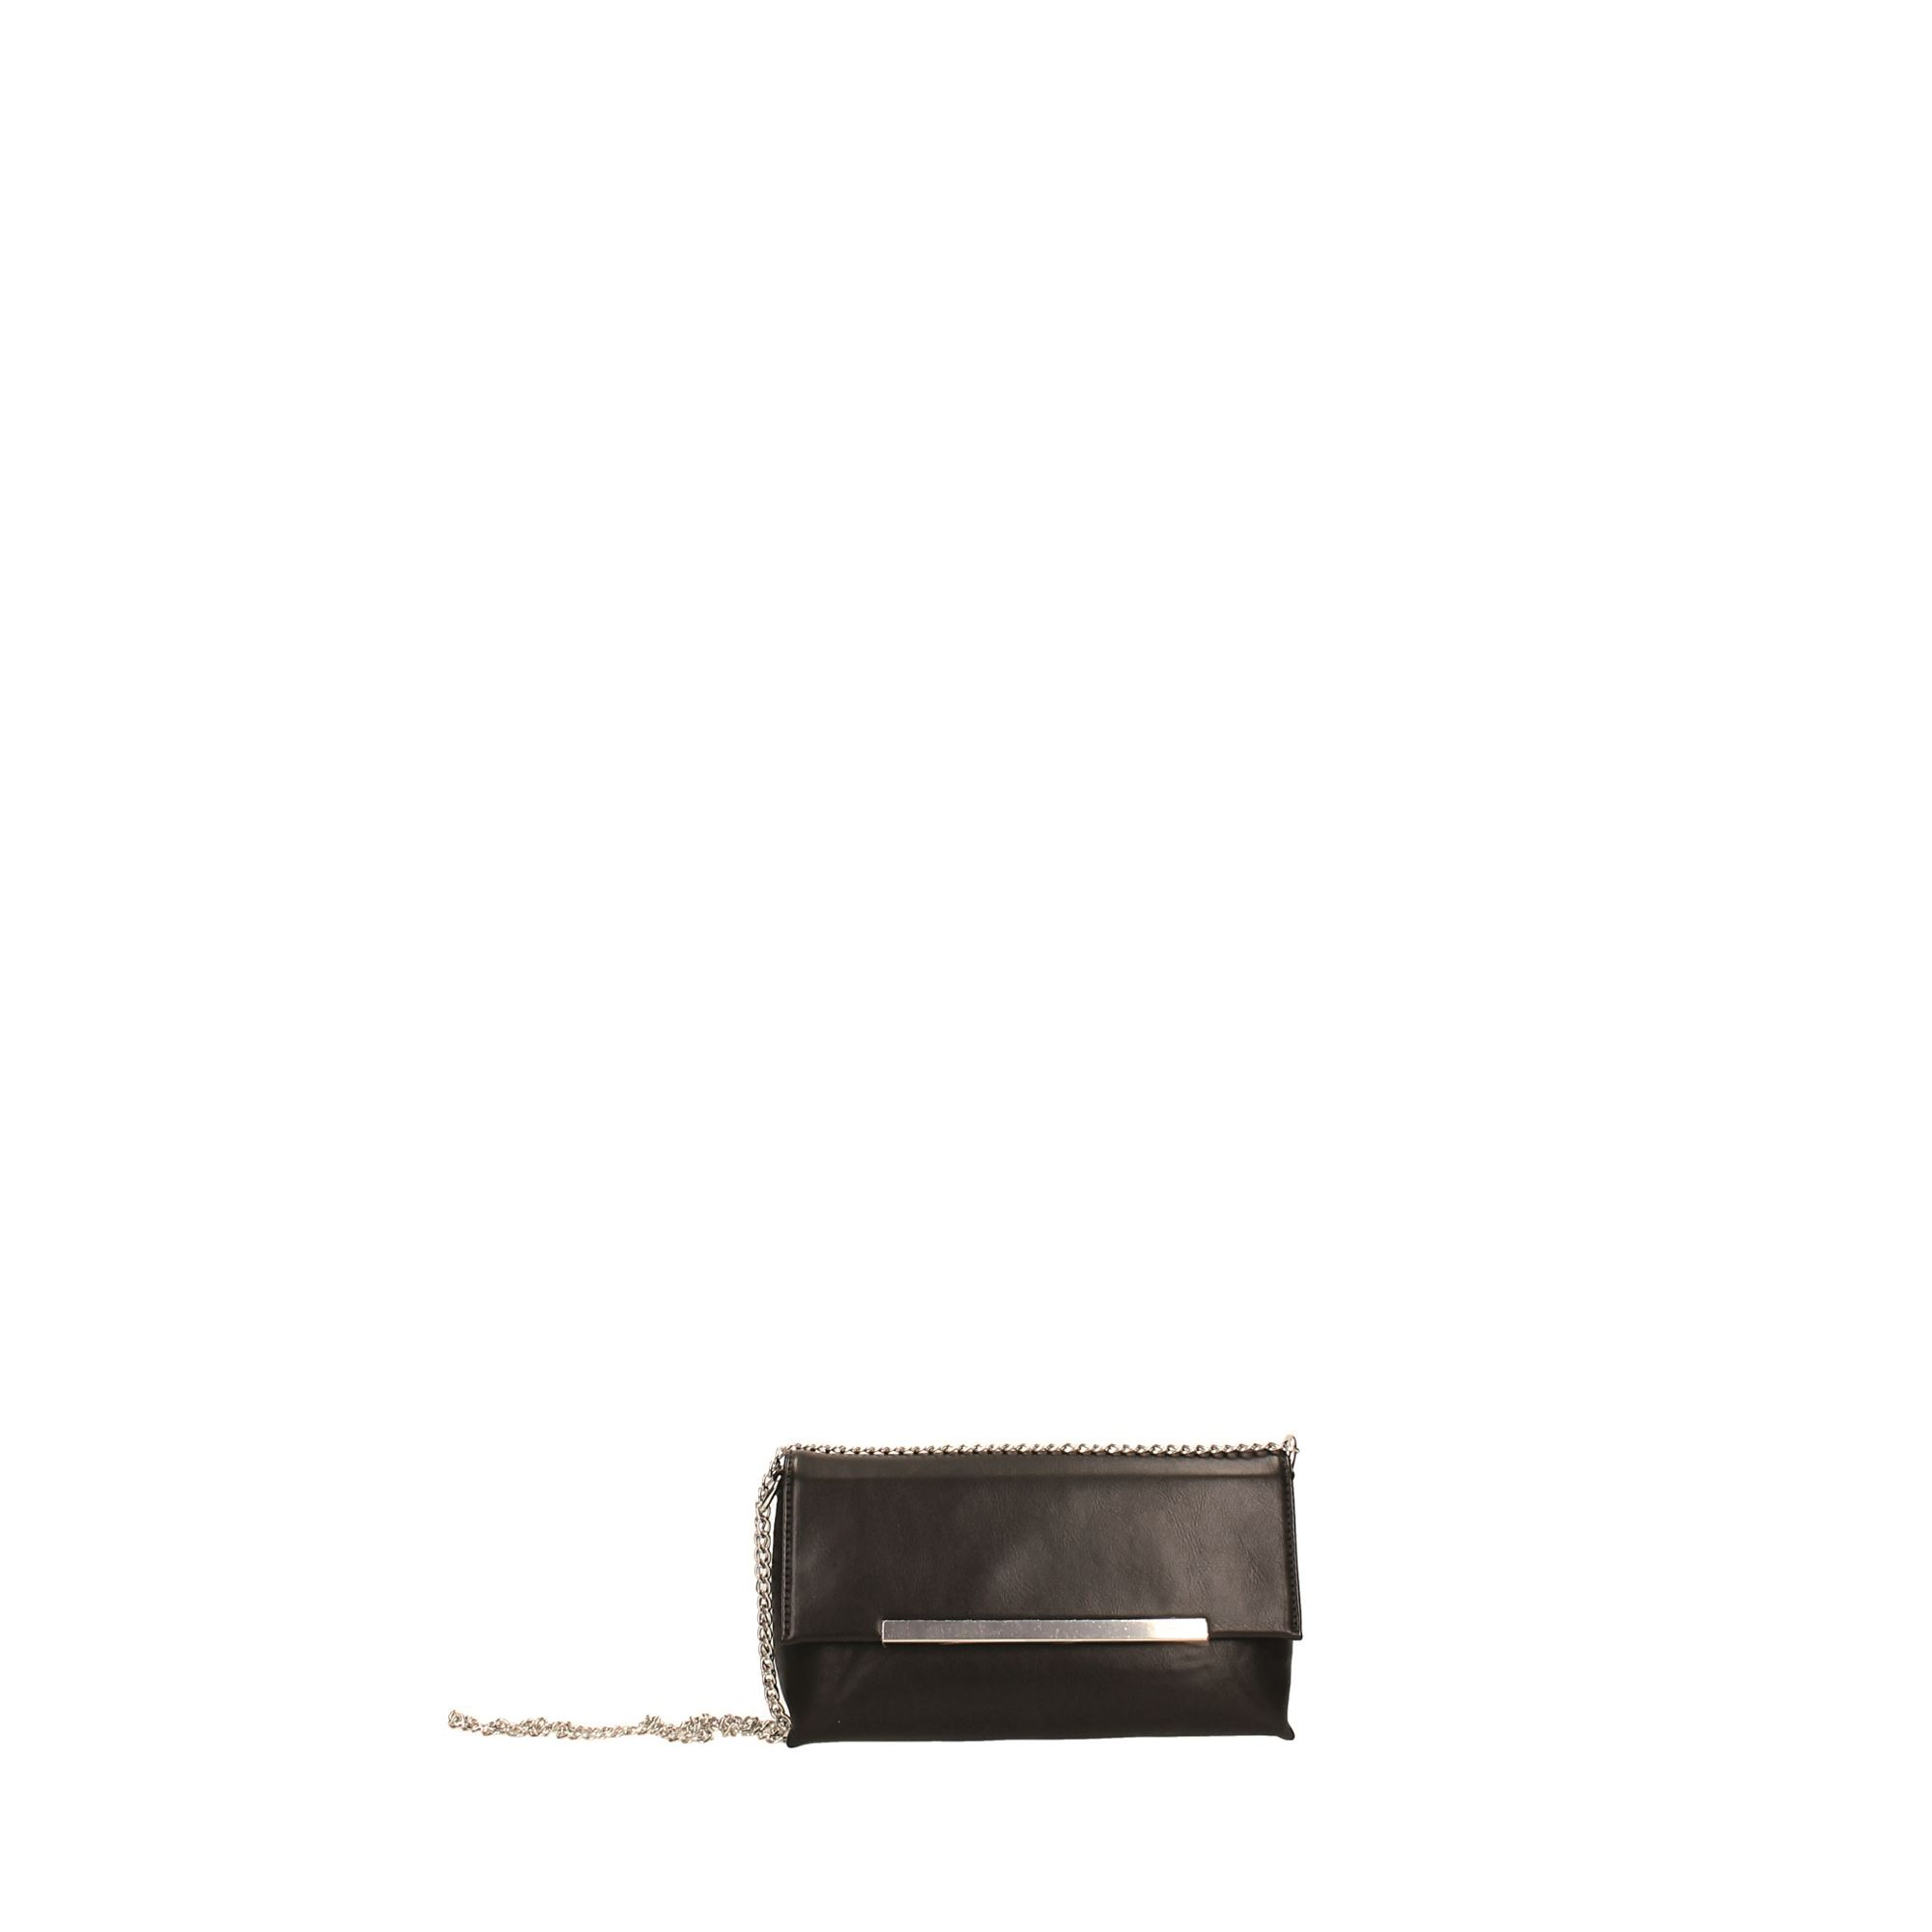 Tata Italia Accessories Woman Bags Black RESHAM-P